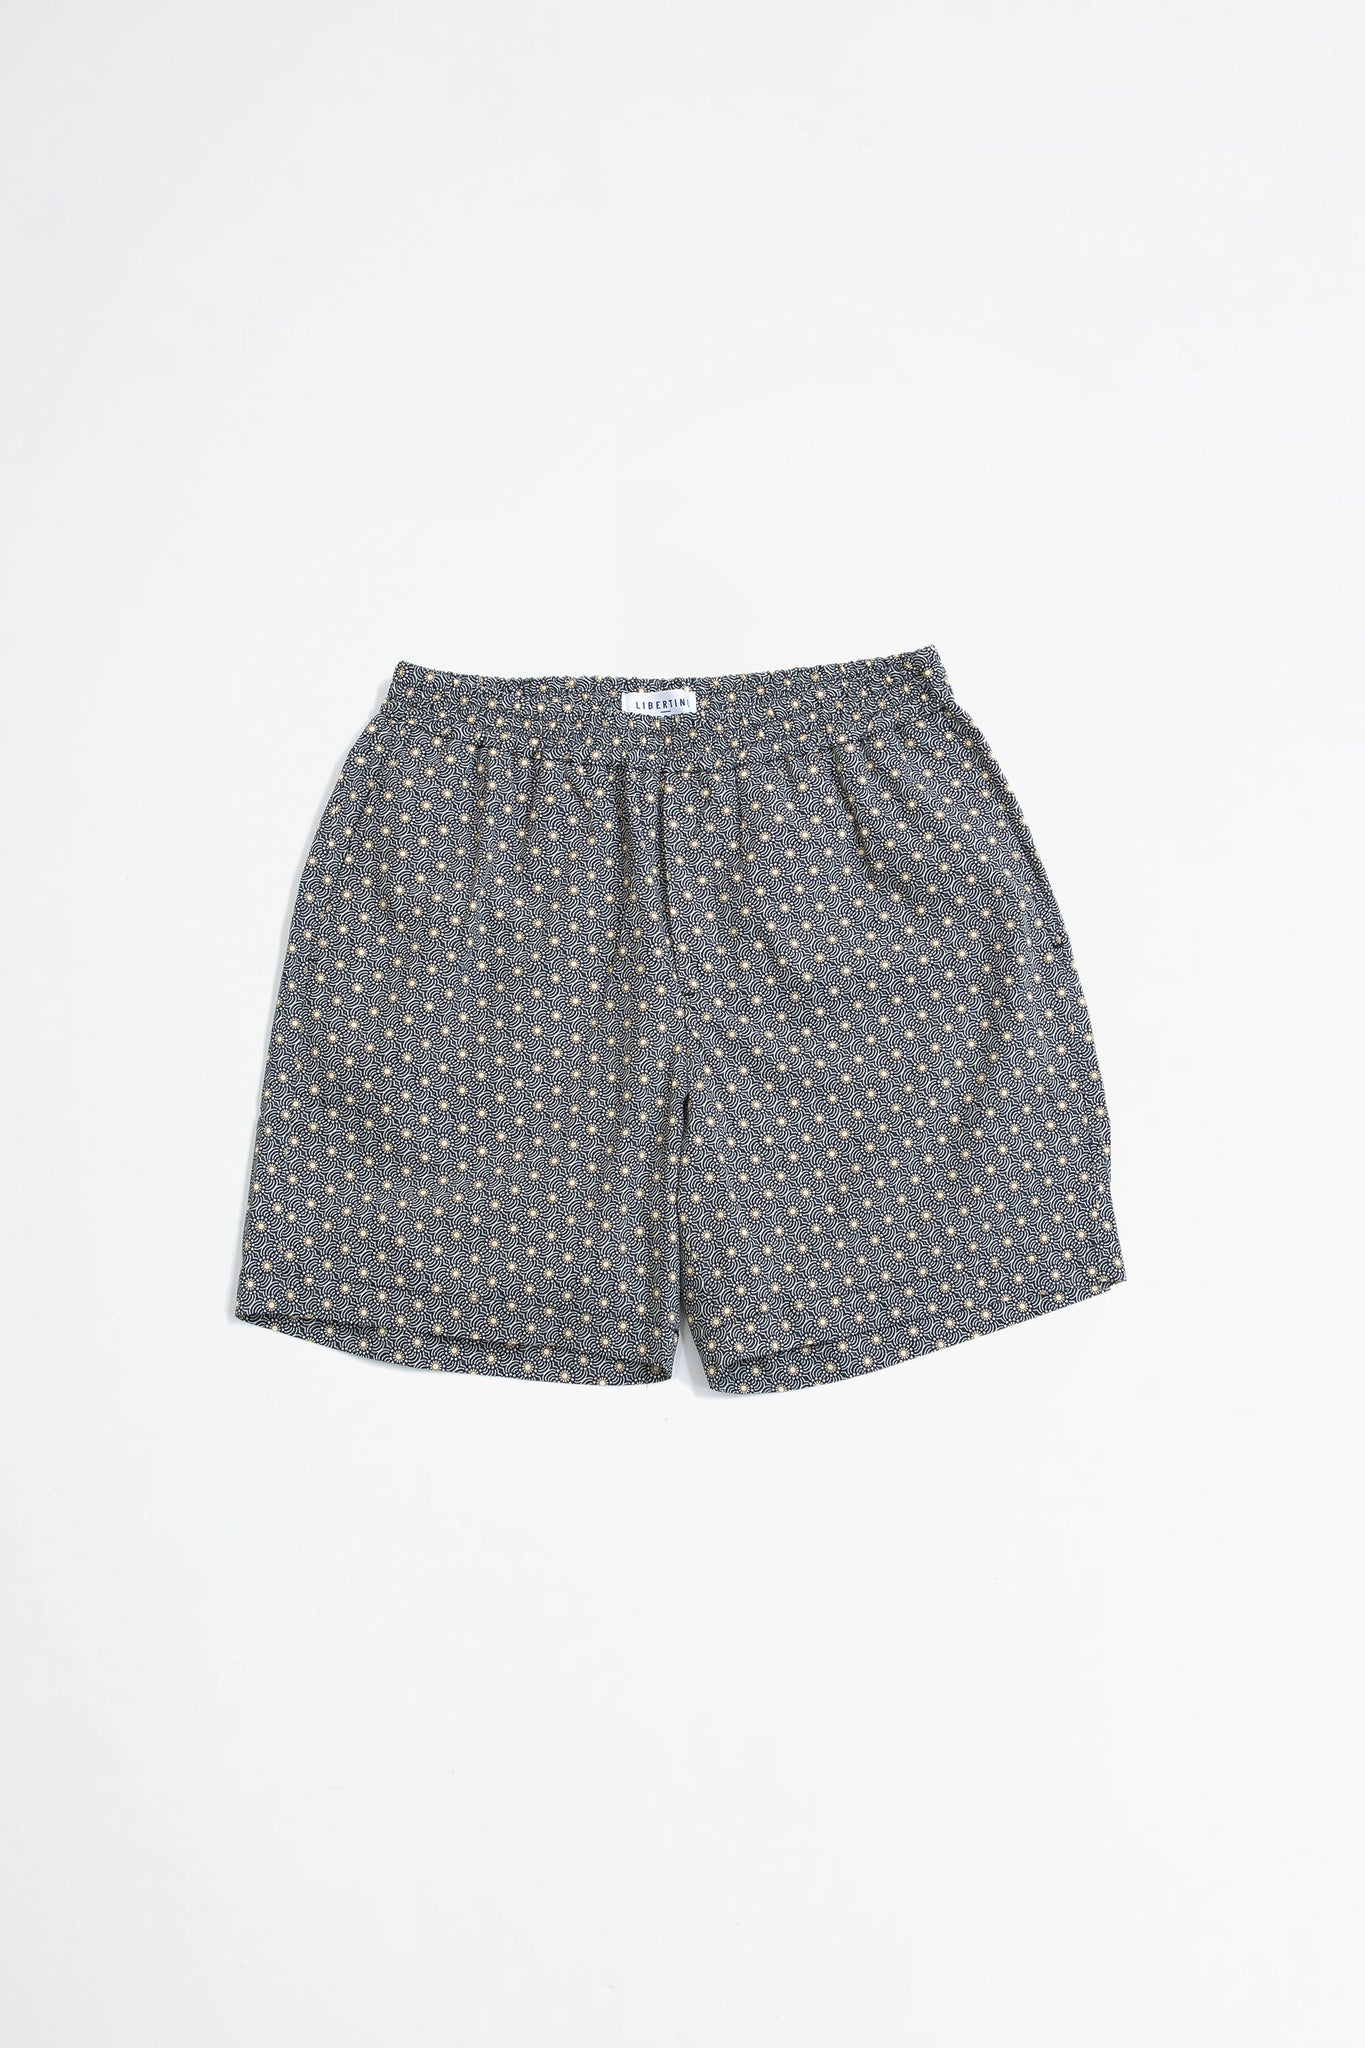 Front shorts navy tiles